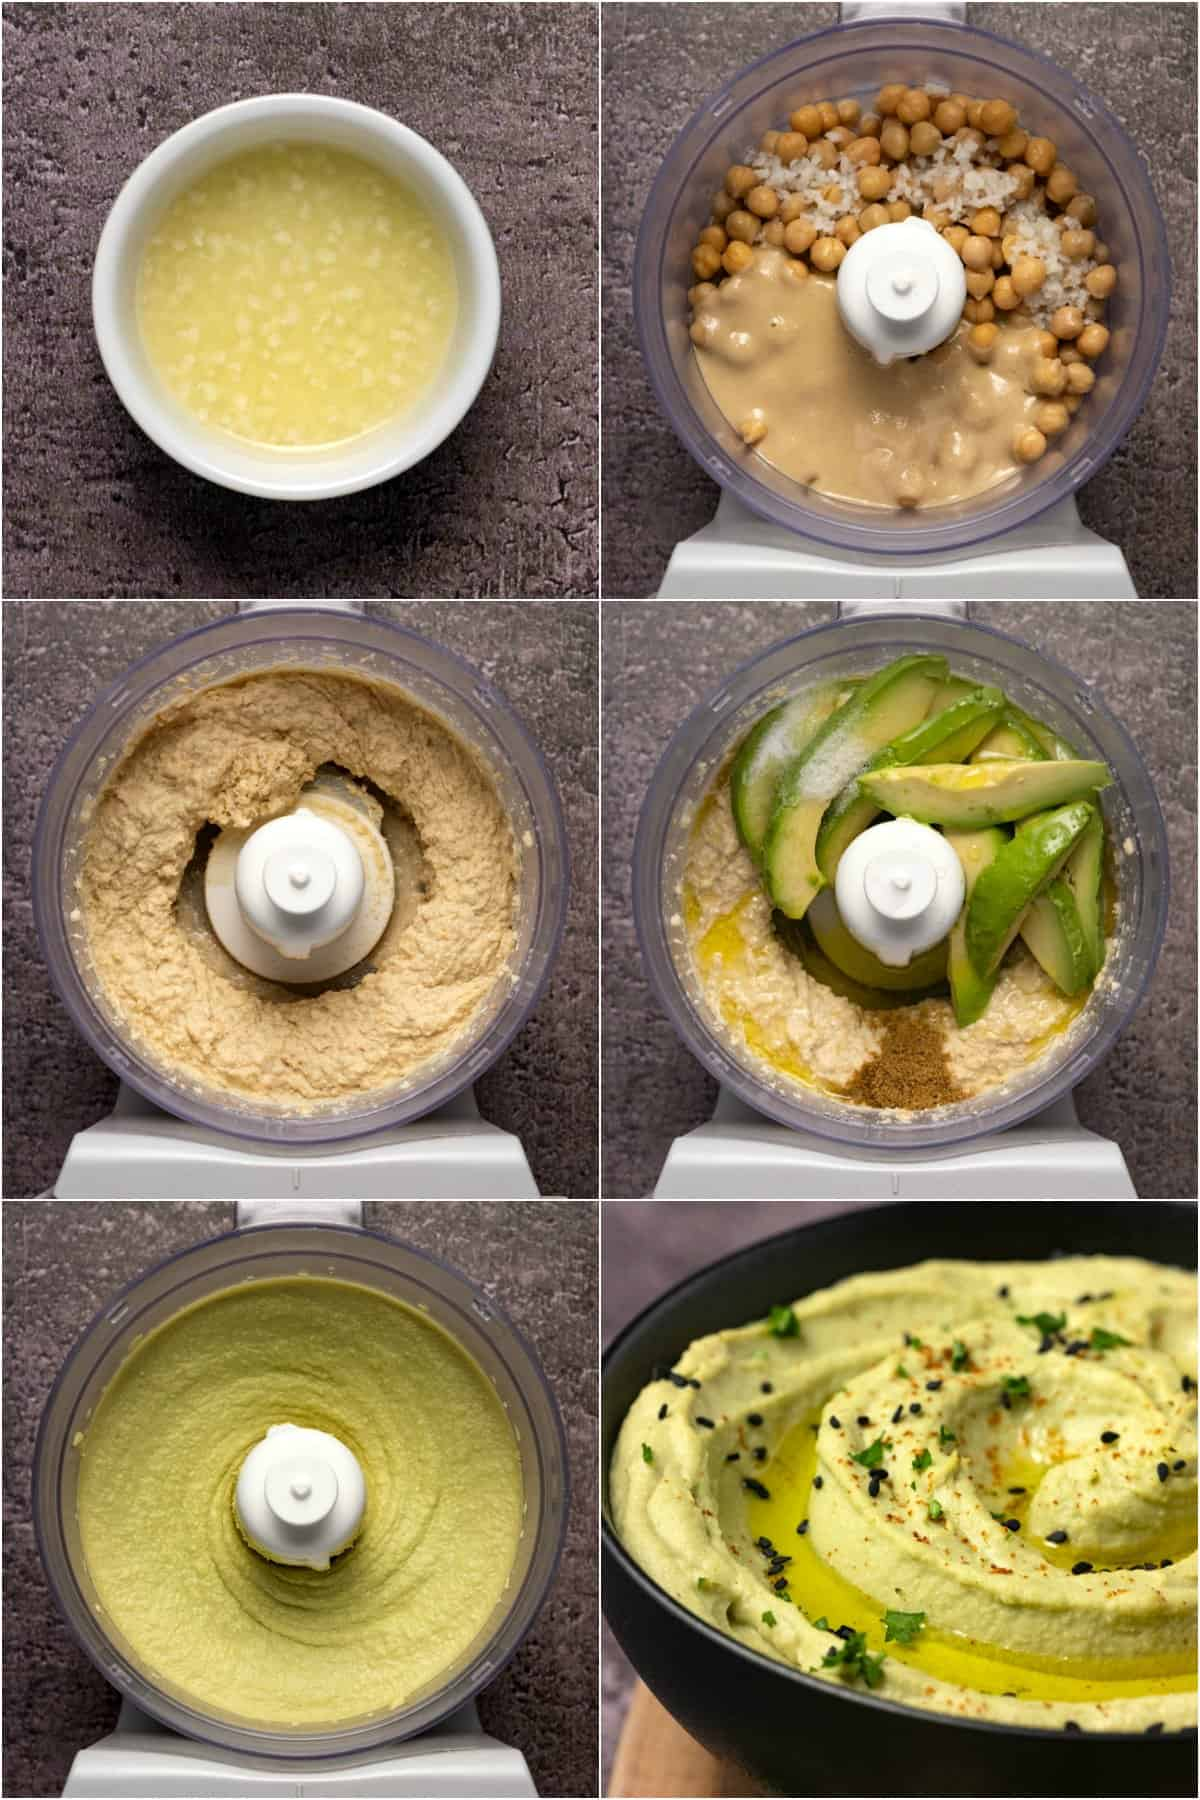 Step by step process photo collage of making avocado hummus.